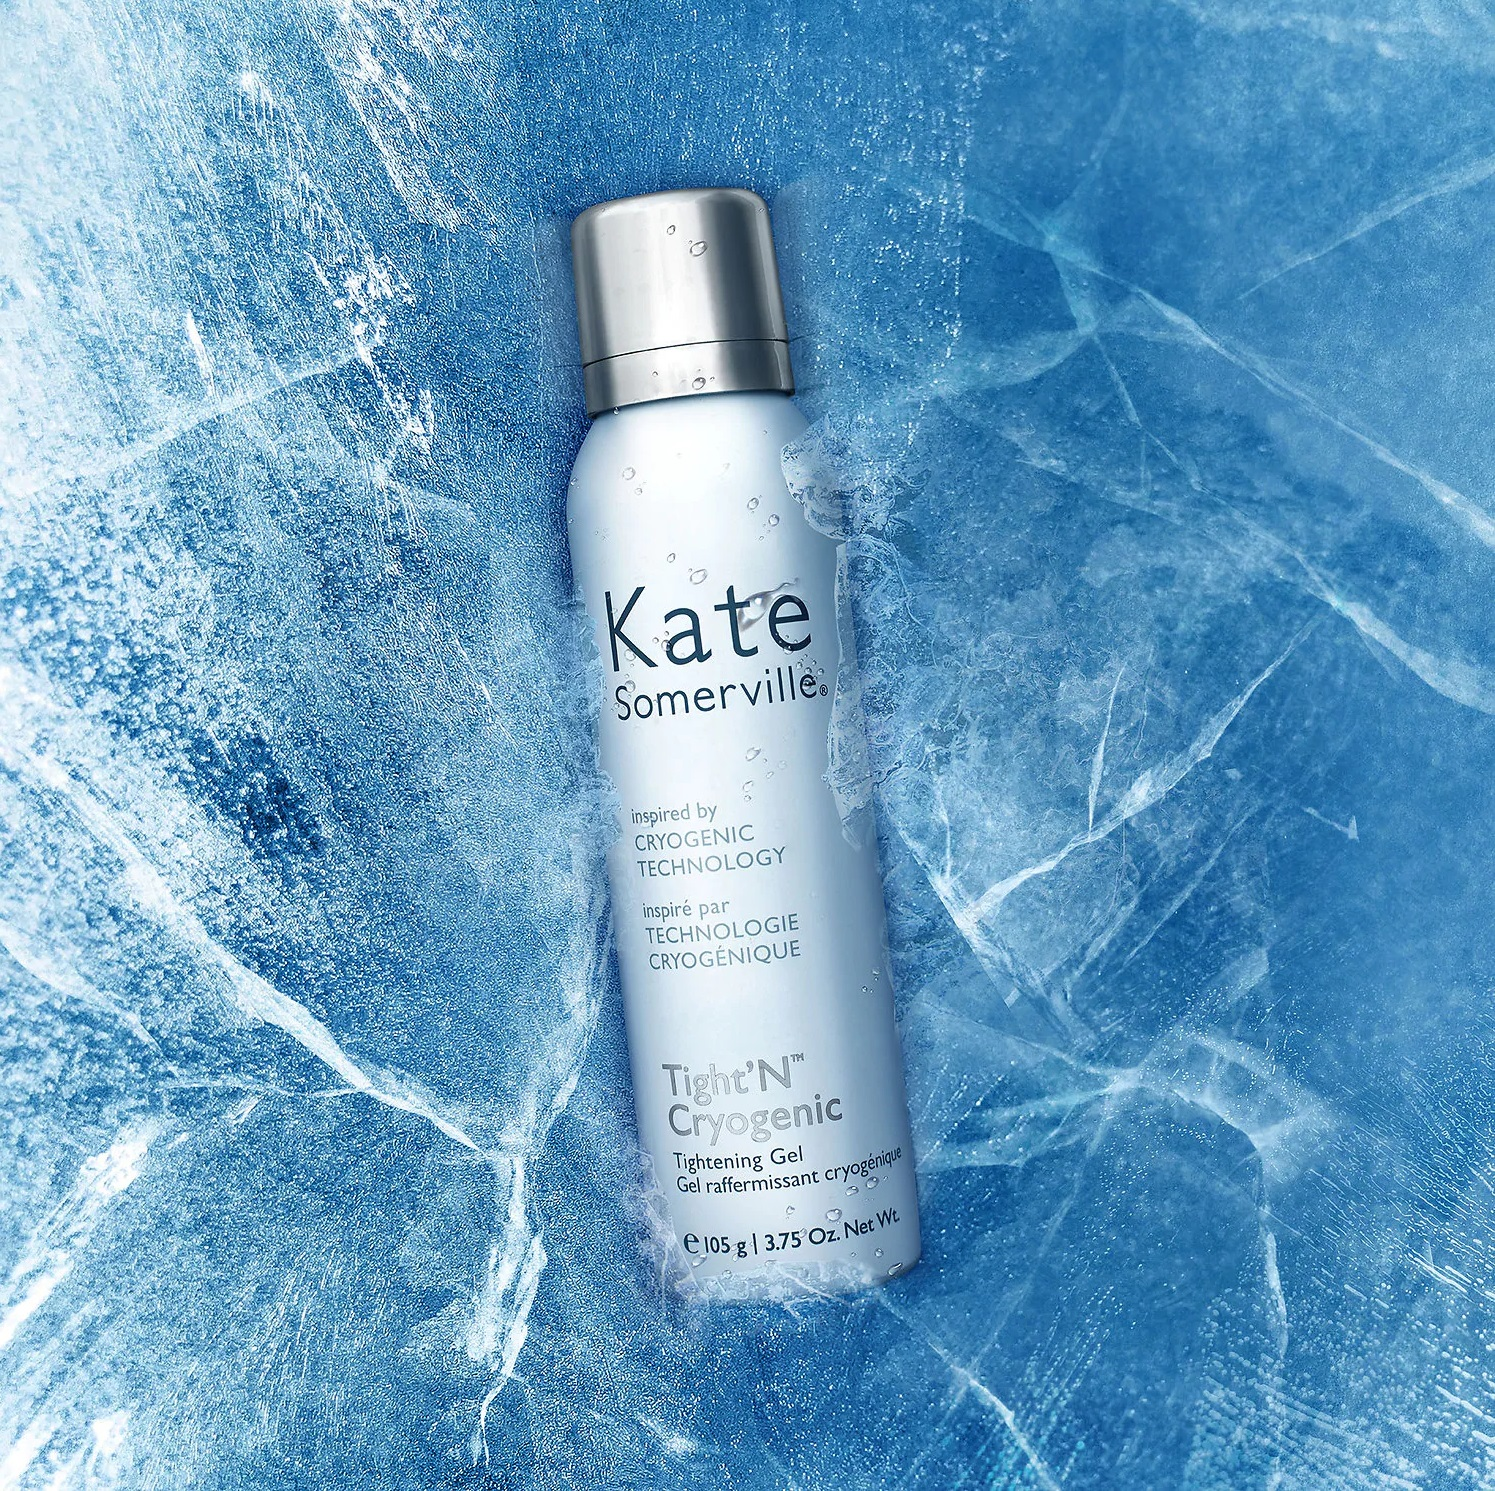 Kate Somerville's Tight'N™ Cryogenic Tightening Gel